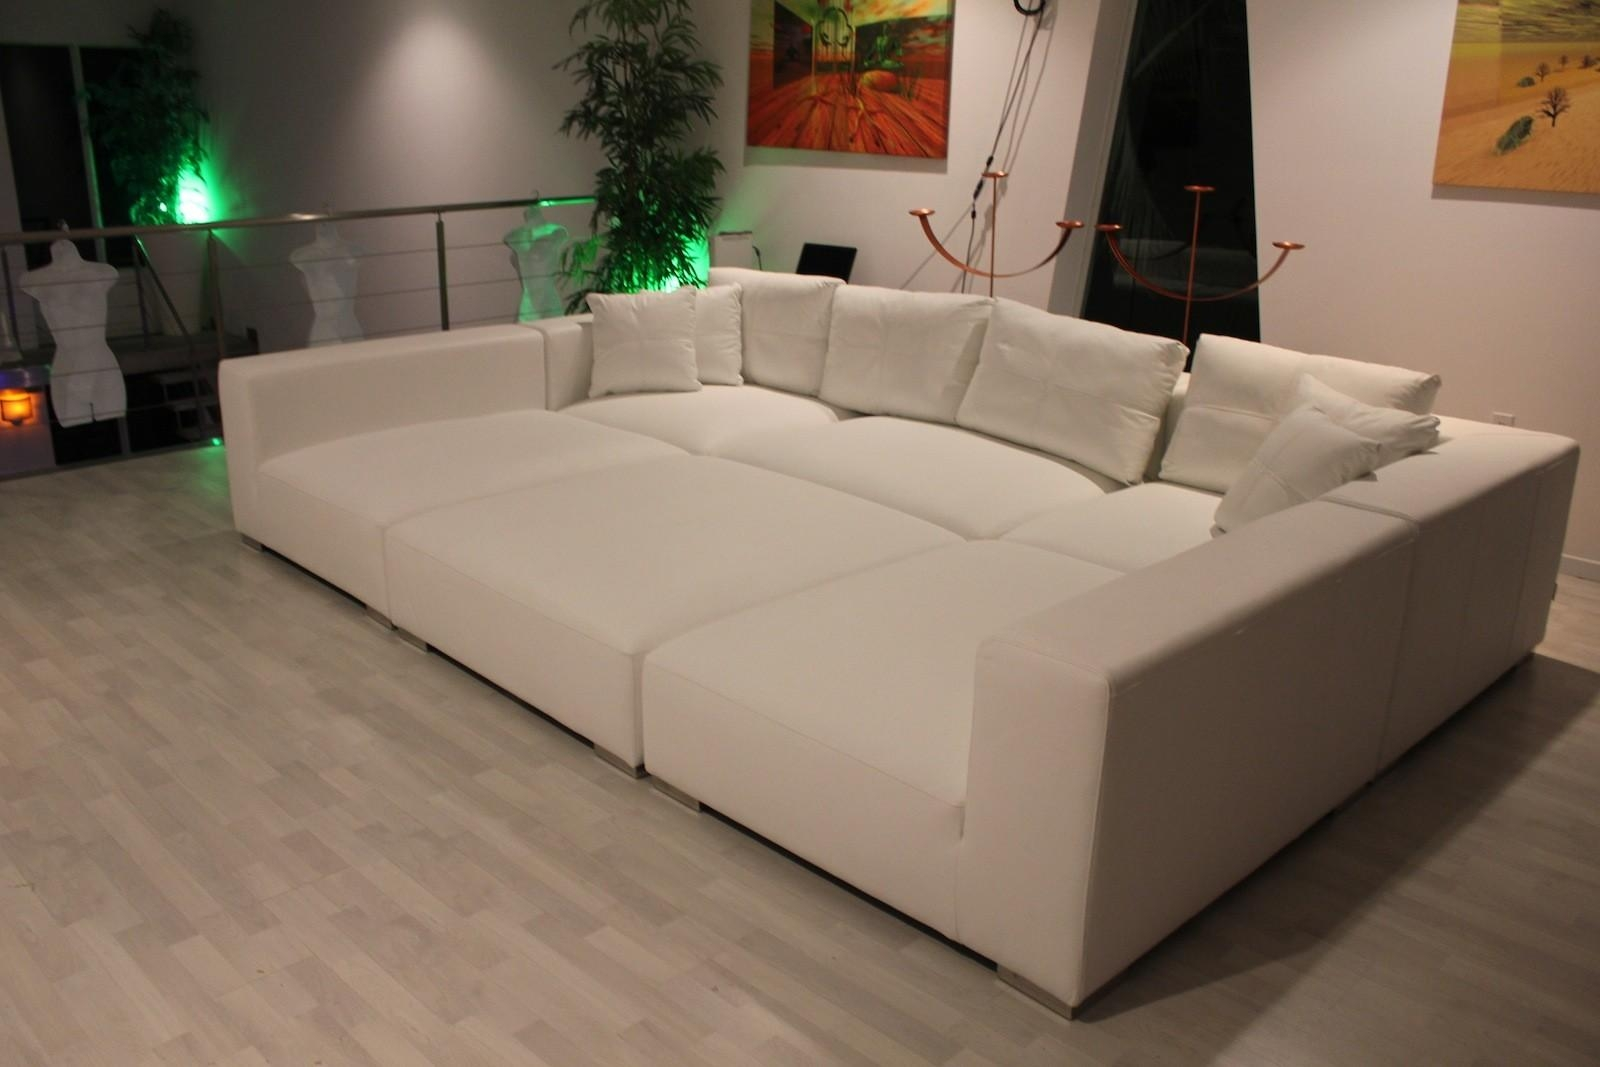 Sectional Pit Sofa With Design Best Collection Ideas Pictures Regarding Pit Sofas (View 2 of 20)